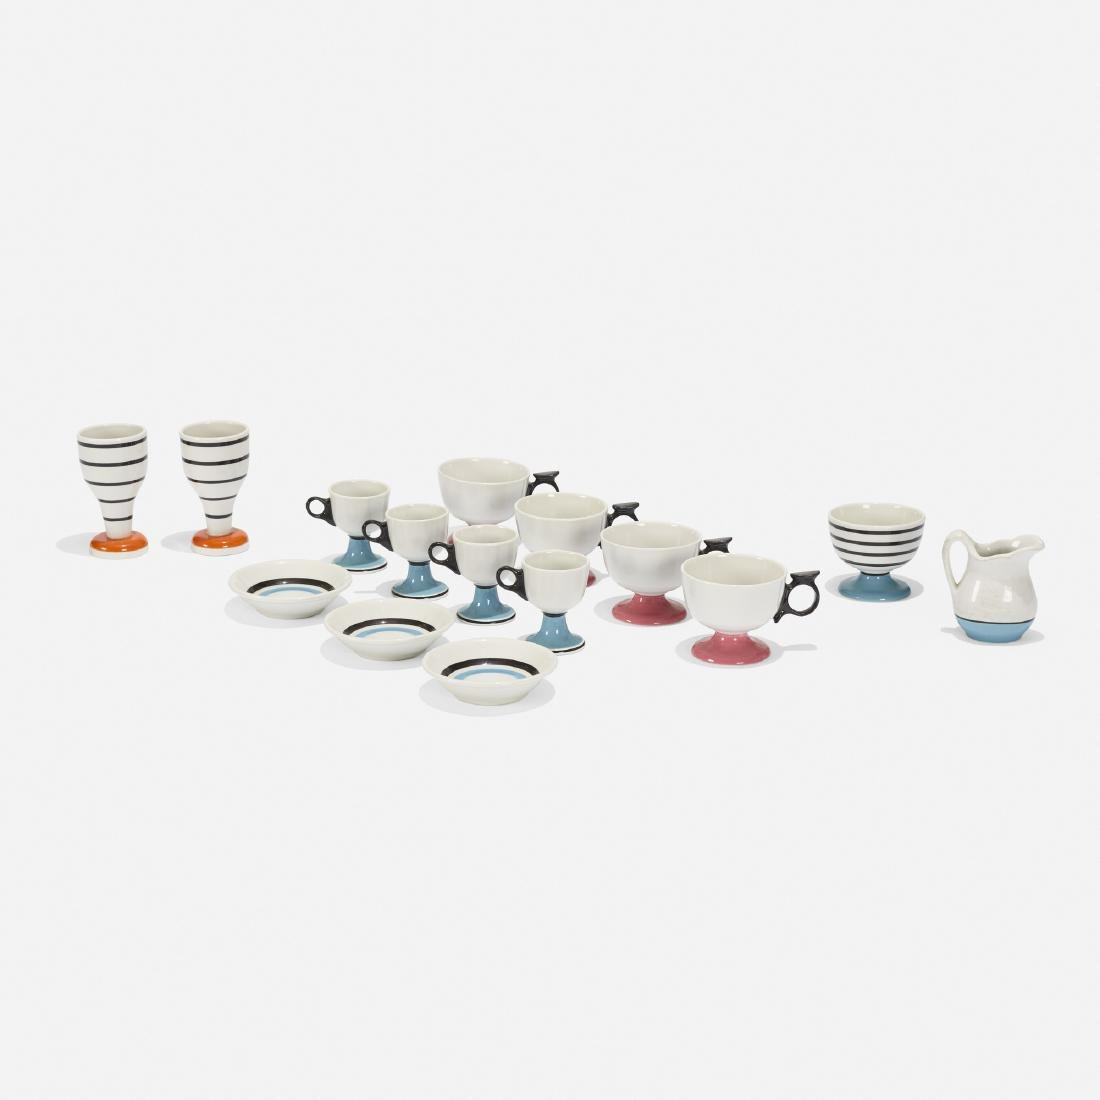 Girard, tableware from La Fonda del Sol